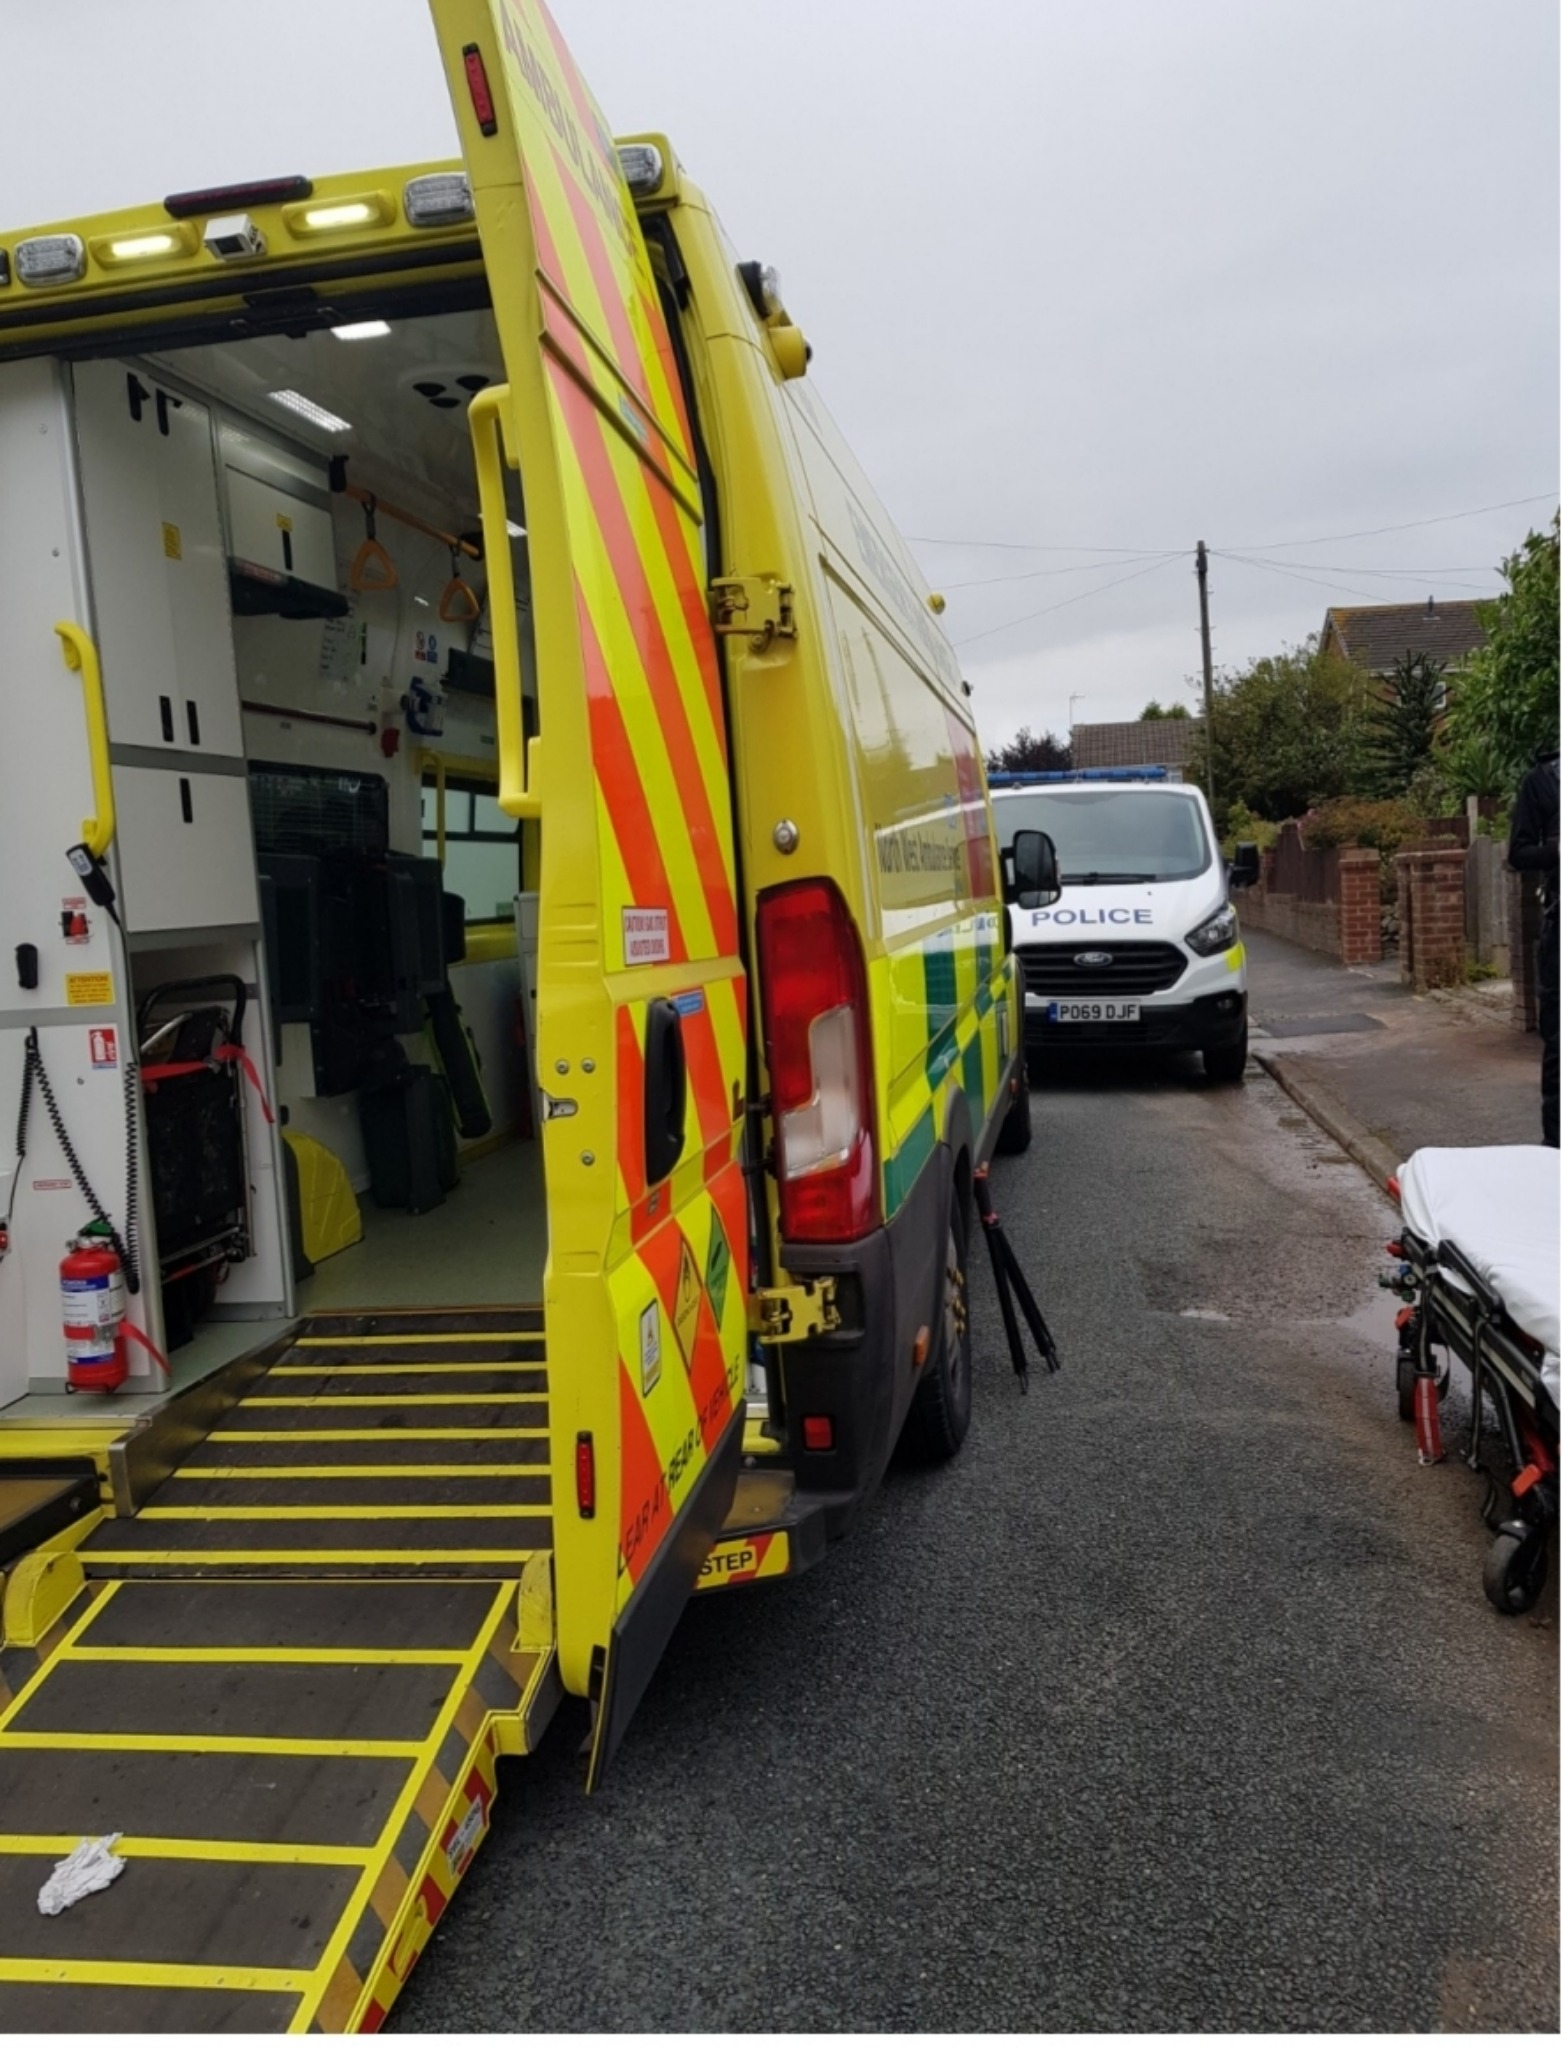 Off-road biker fled after passenger was thrown from vehicle